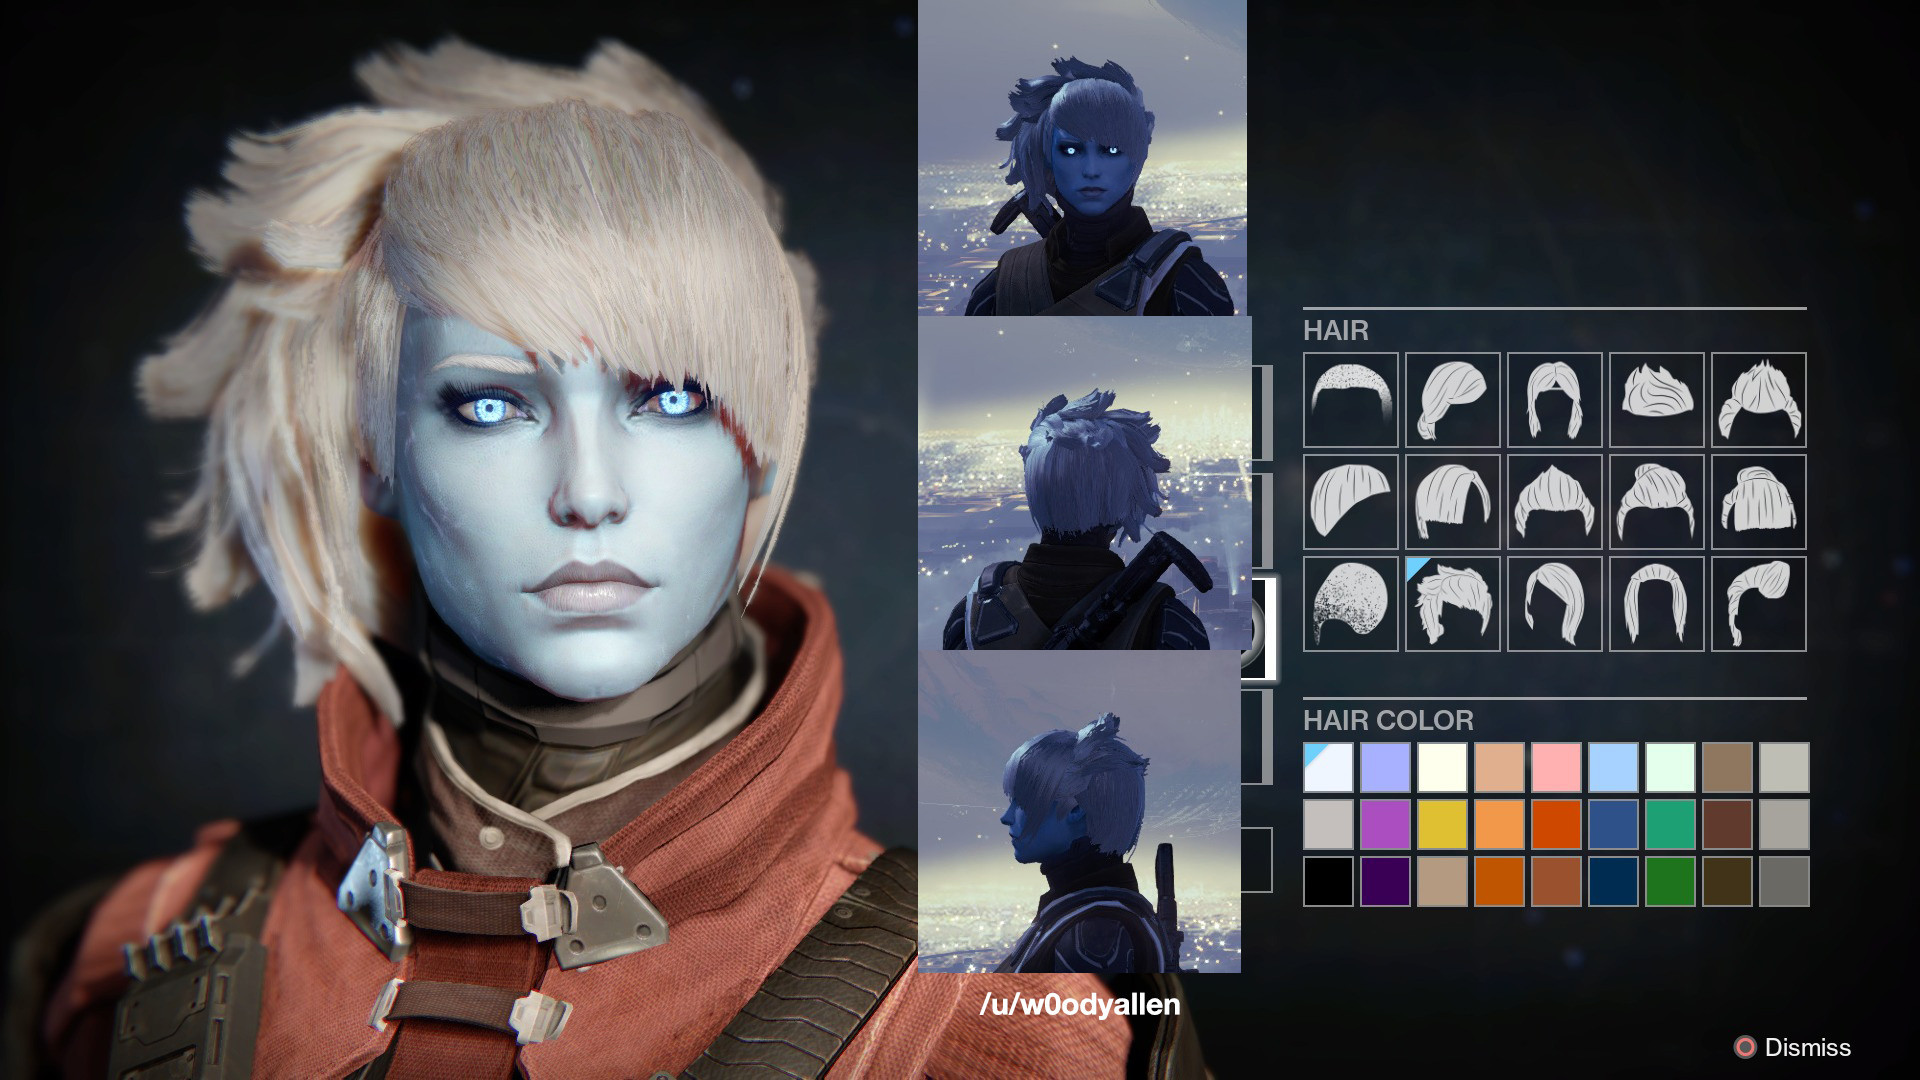 Destiny Human Female Hairstyles From Behind  Destiny Awoken Female Hairstyles what your hair looks